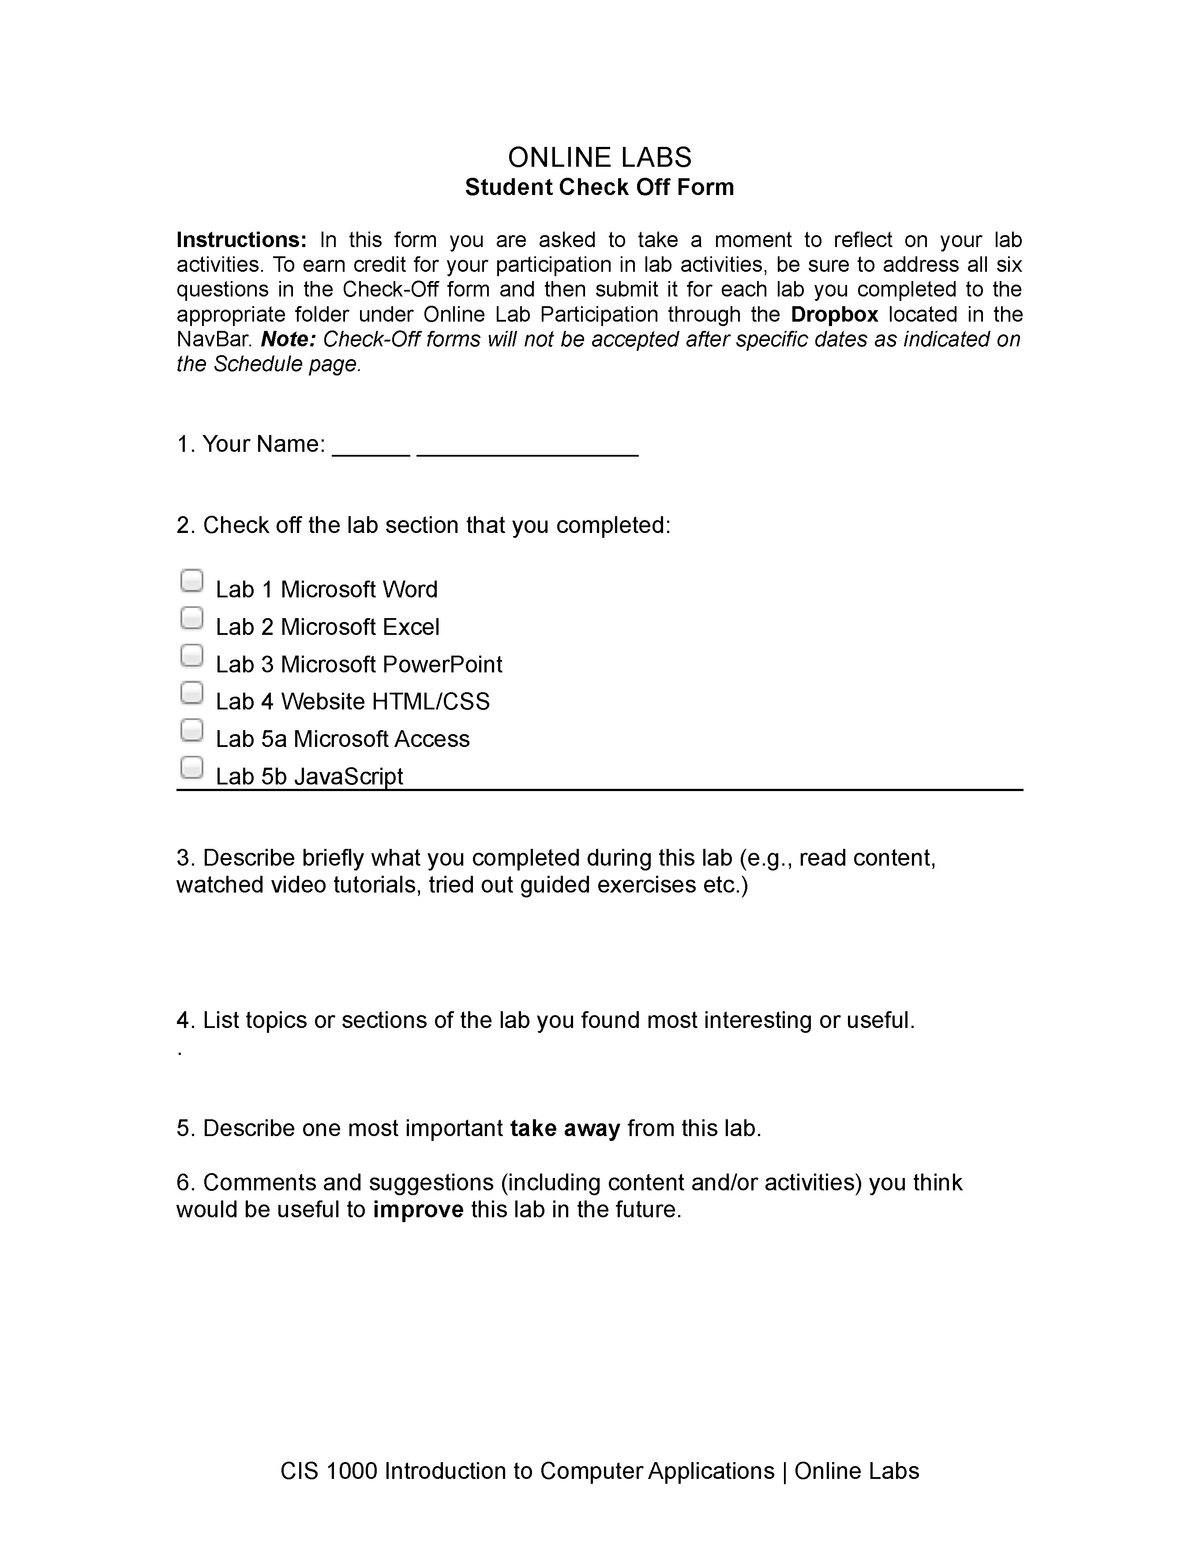 Lab Check Off Form - help with lads use as template not copy